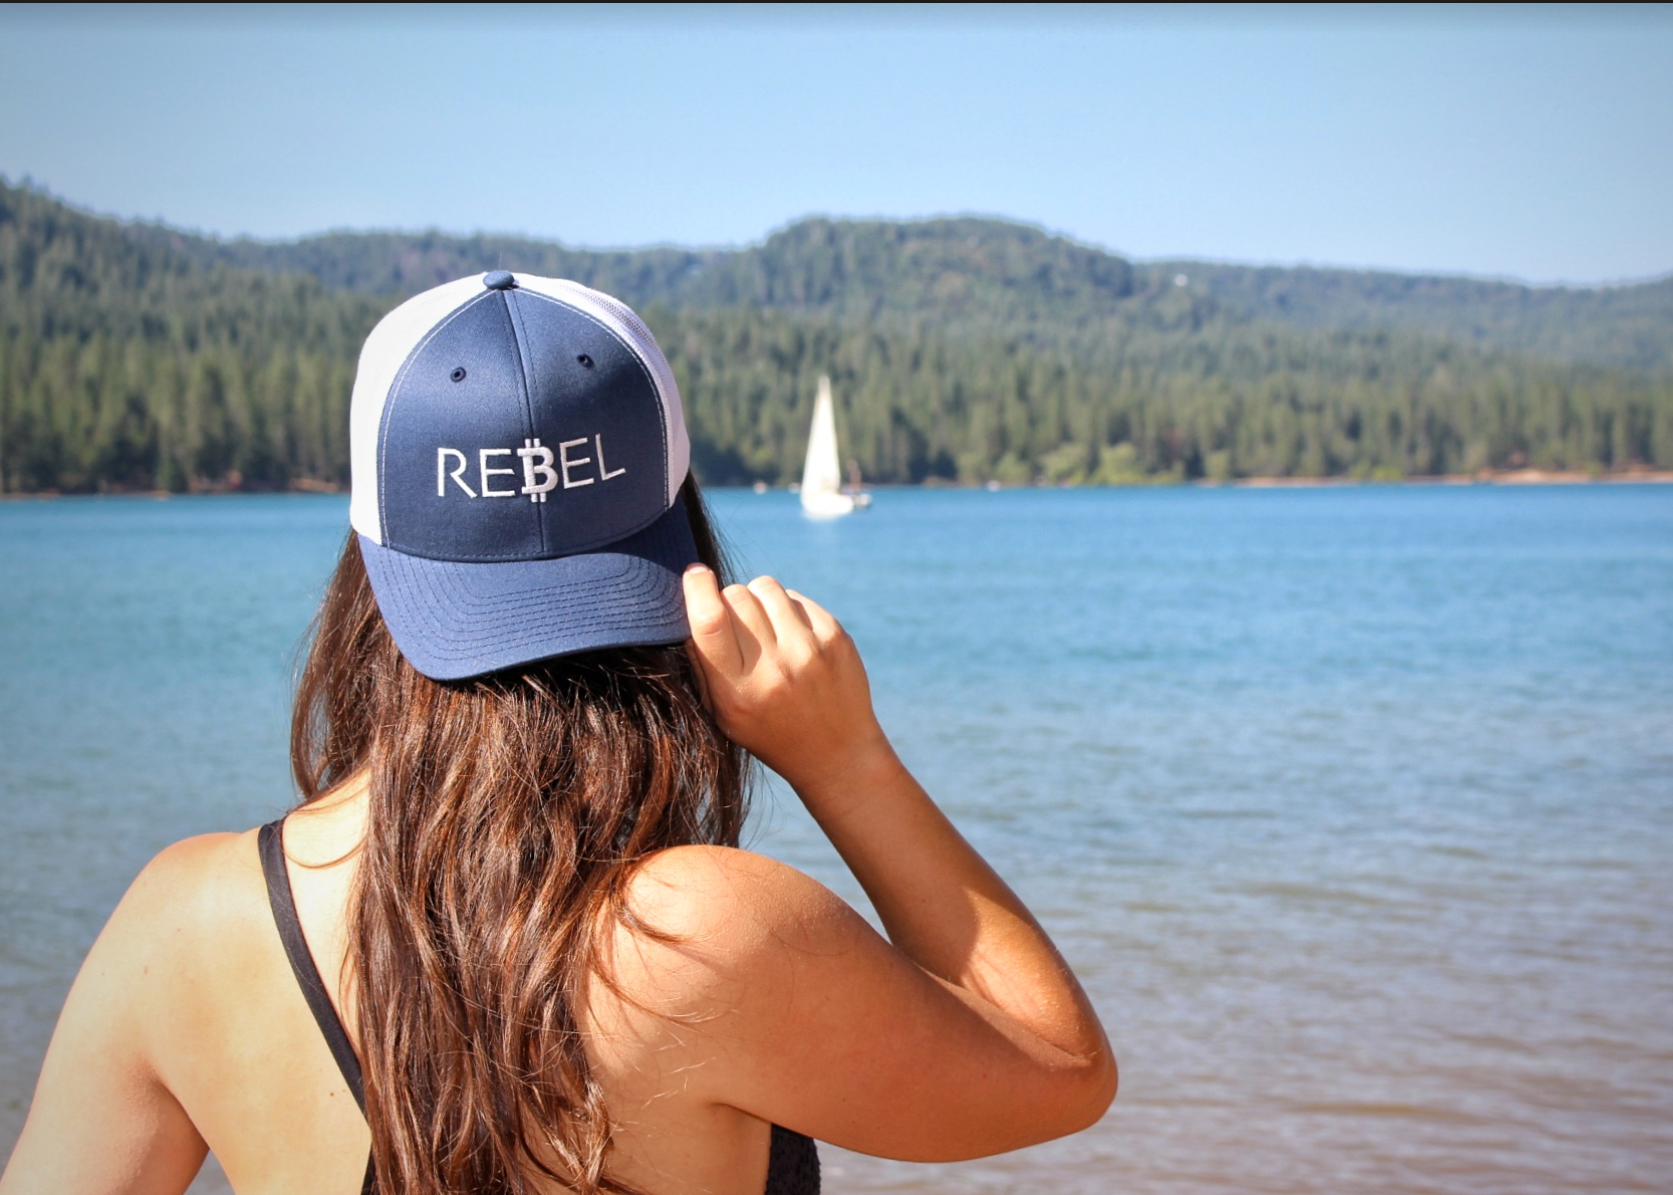 Bitcoin Rebel trucker hat featured in our Etsy shop, The Crypto Savvy Shop